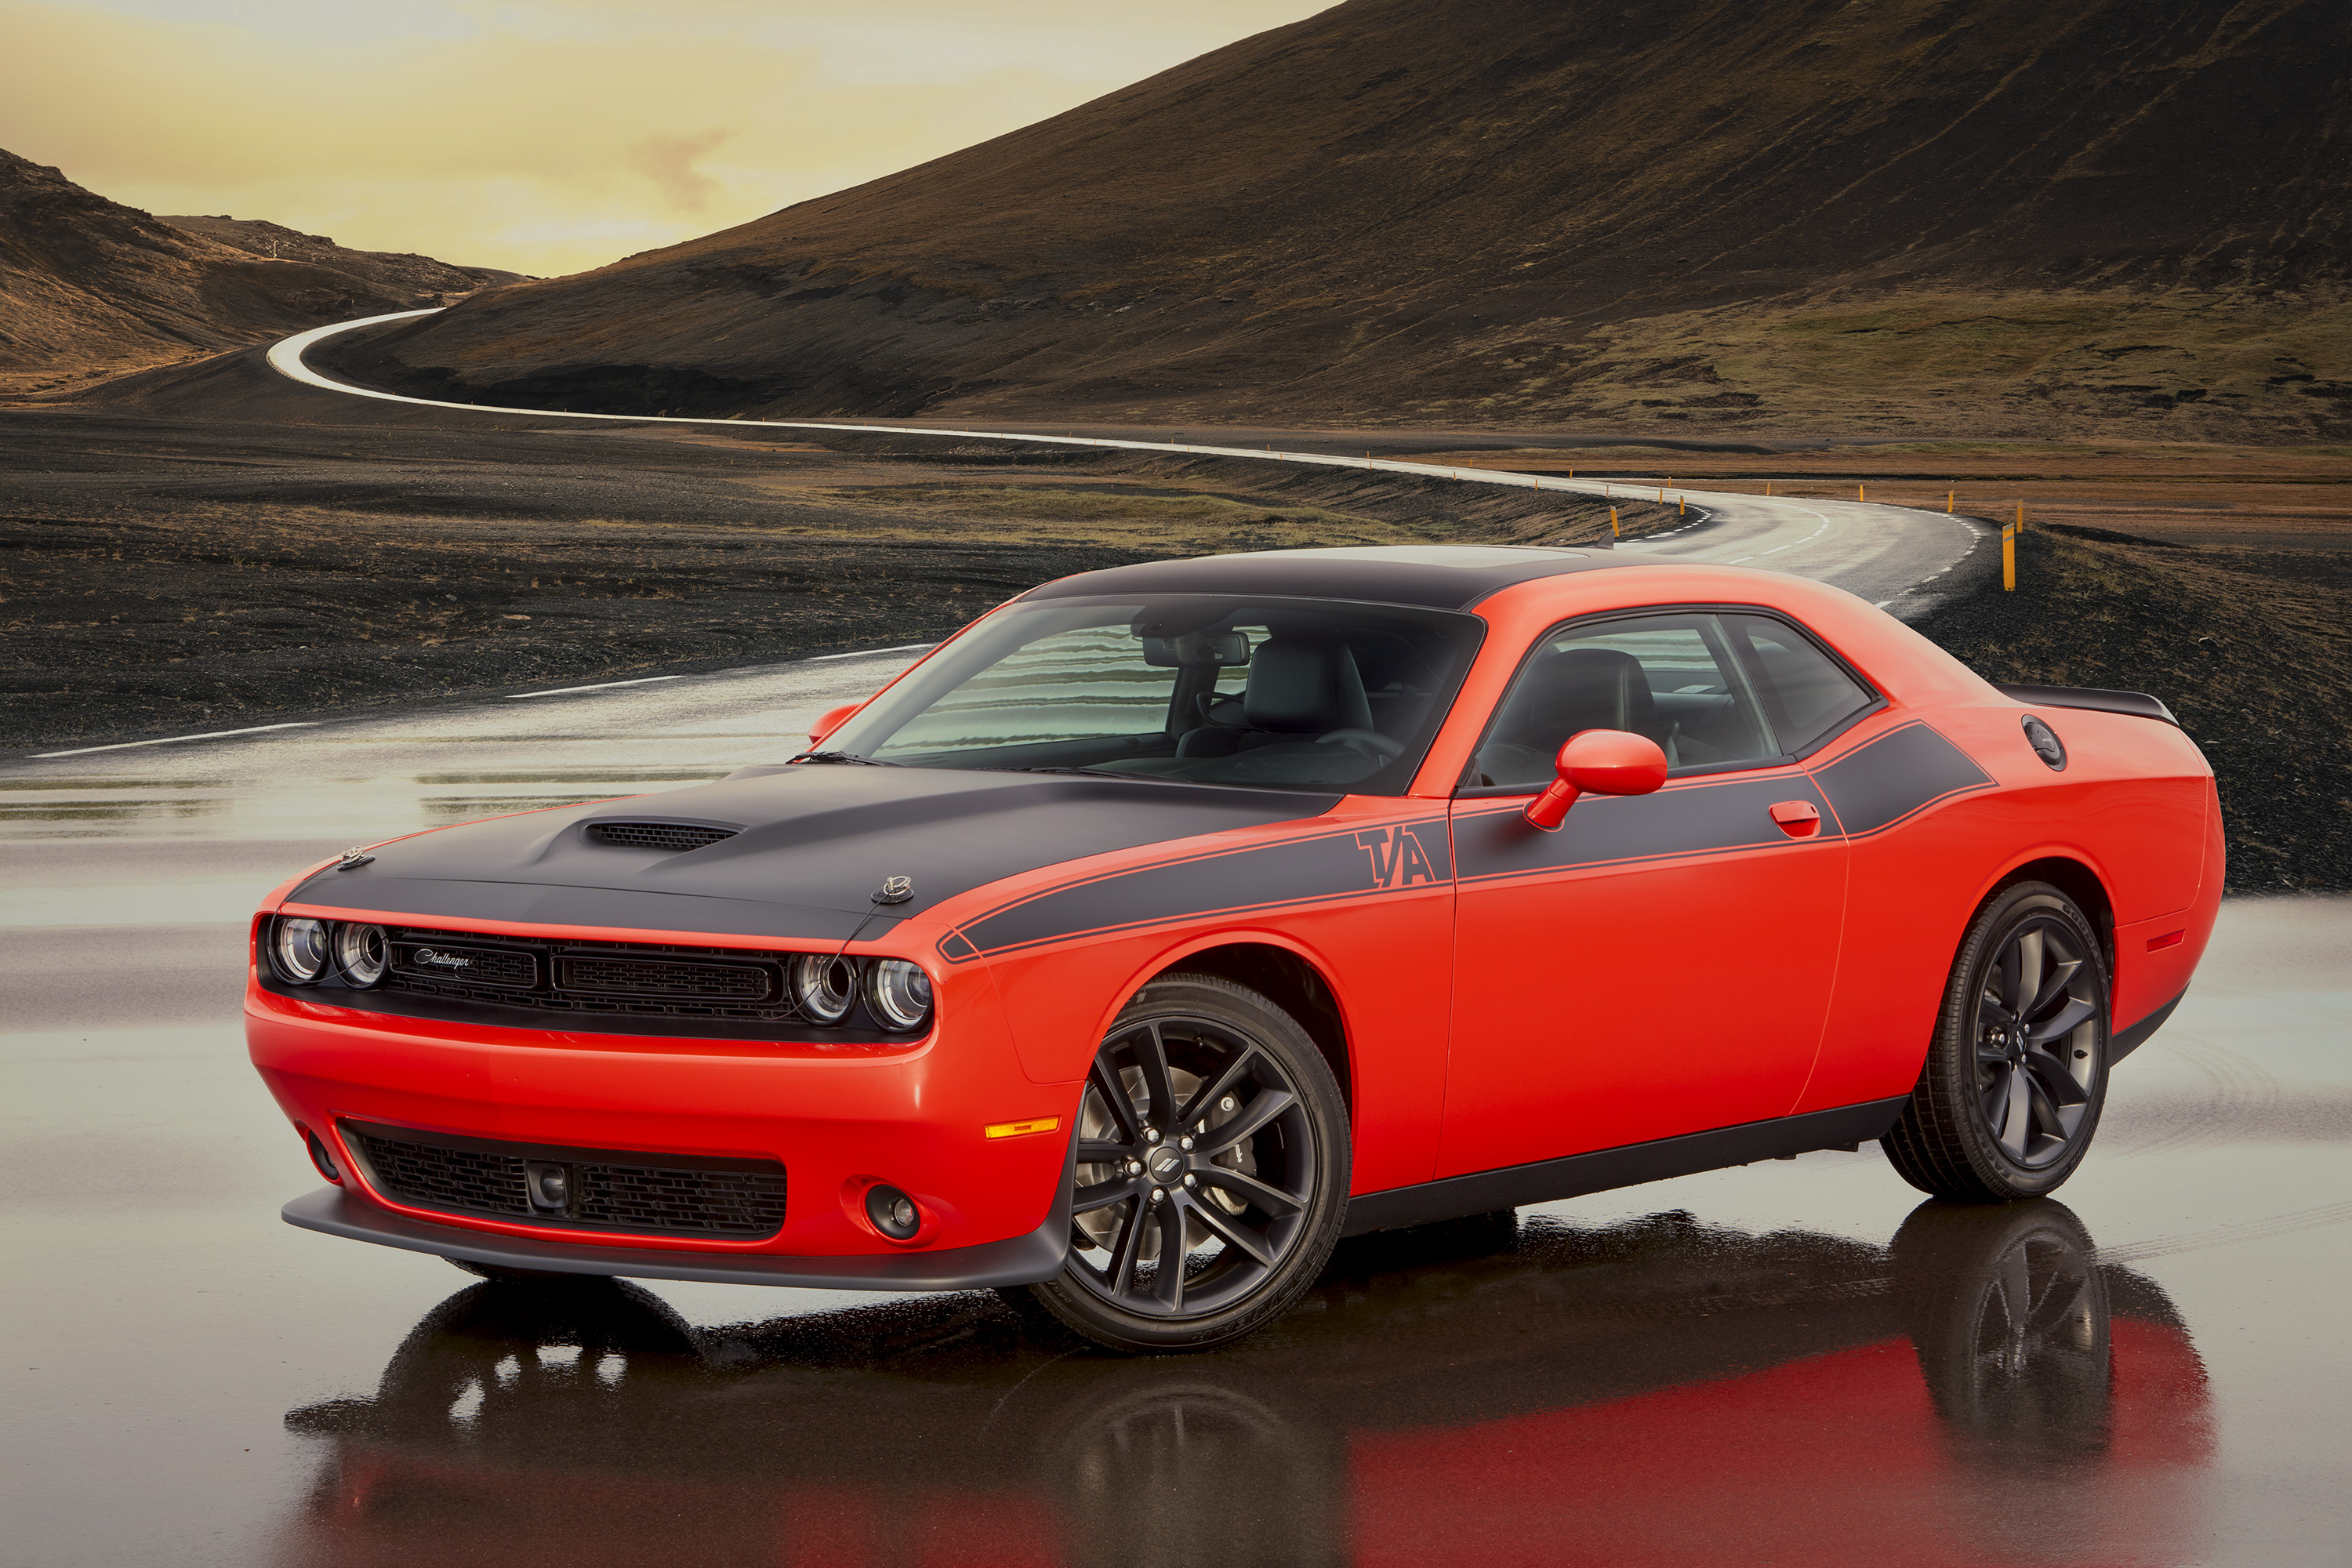 The Upgraded Exterior Of The 2020 Dodge Challenger The News Wheel